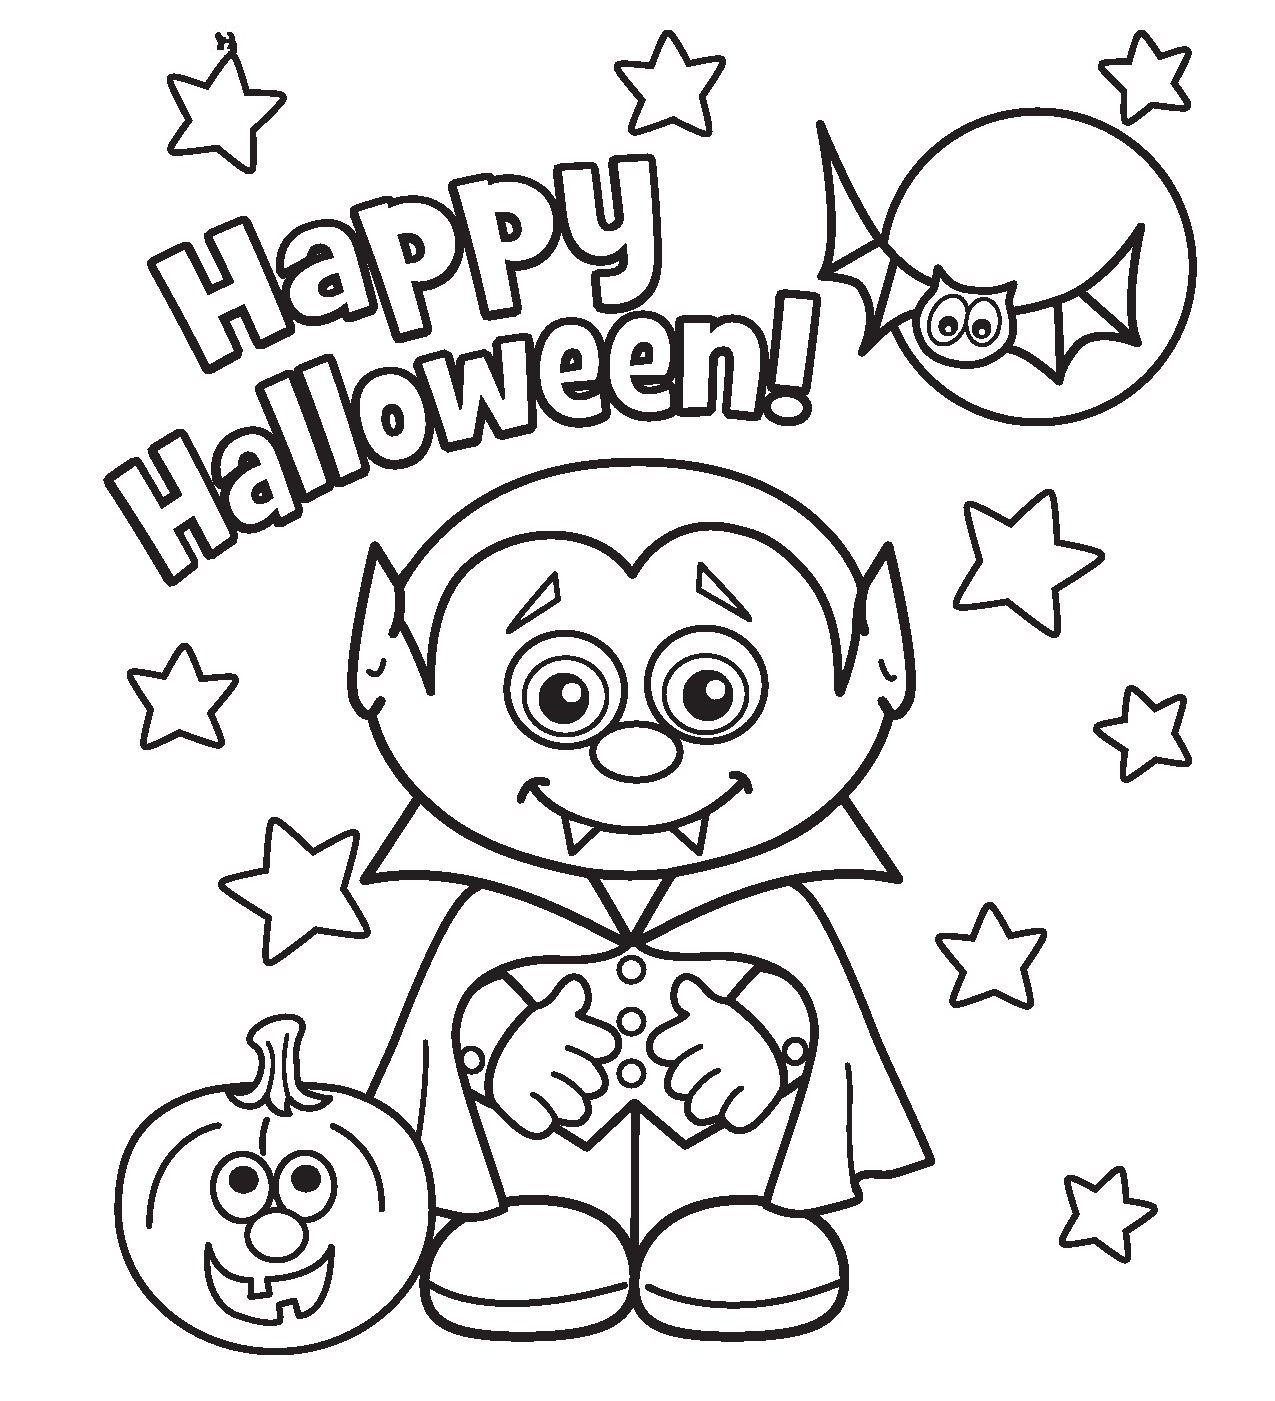 Happy Halloween Dracula Coloring Page